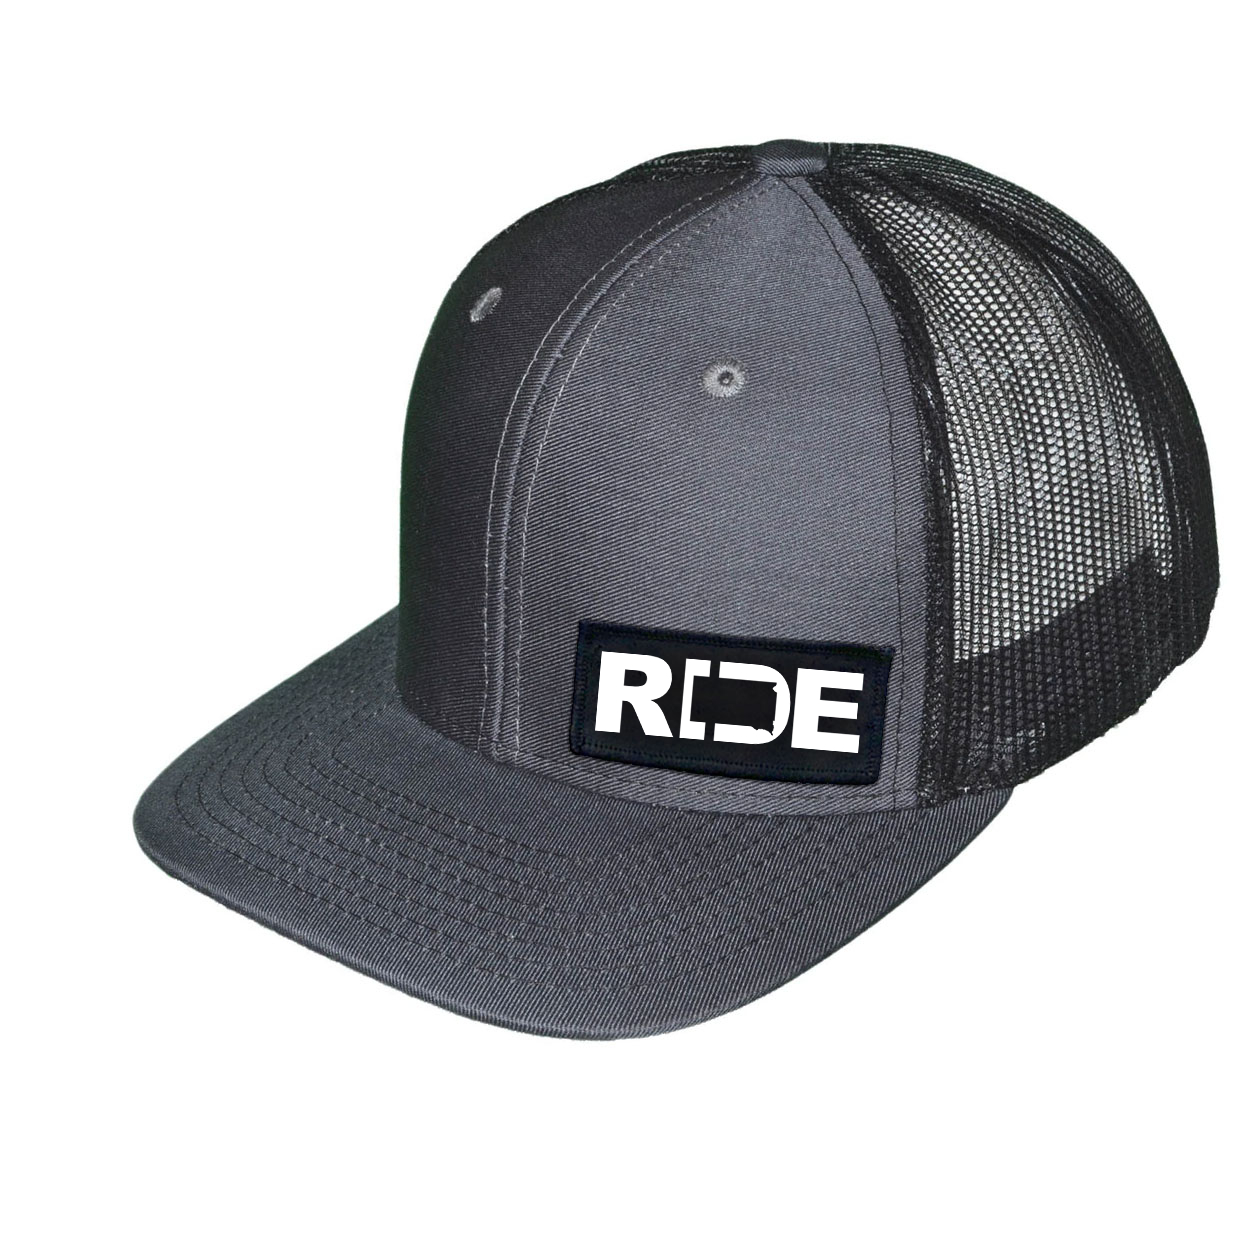 Ride South Dakota Night Out Woven Patch Snapback Trucker Hat Dark Gray/Black (White Logo)